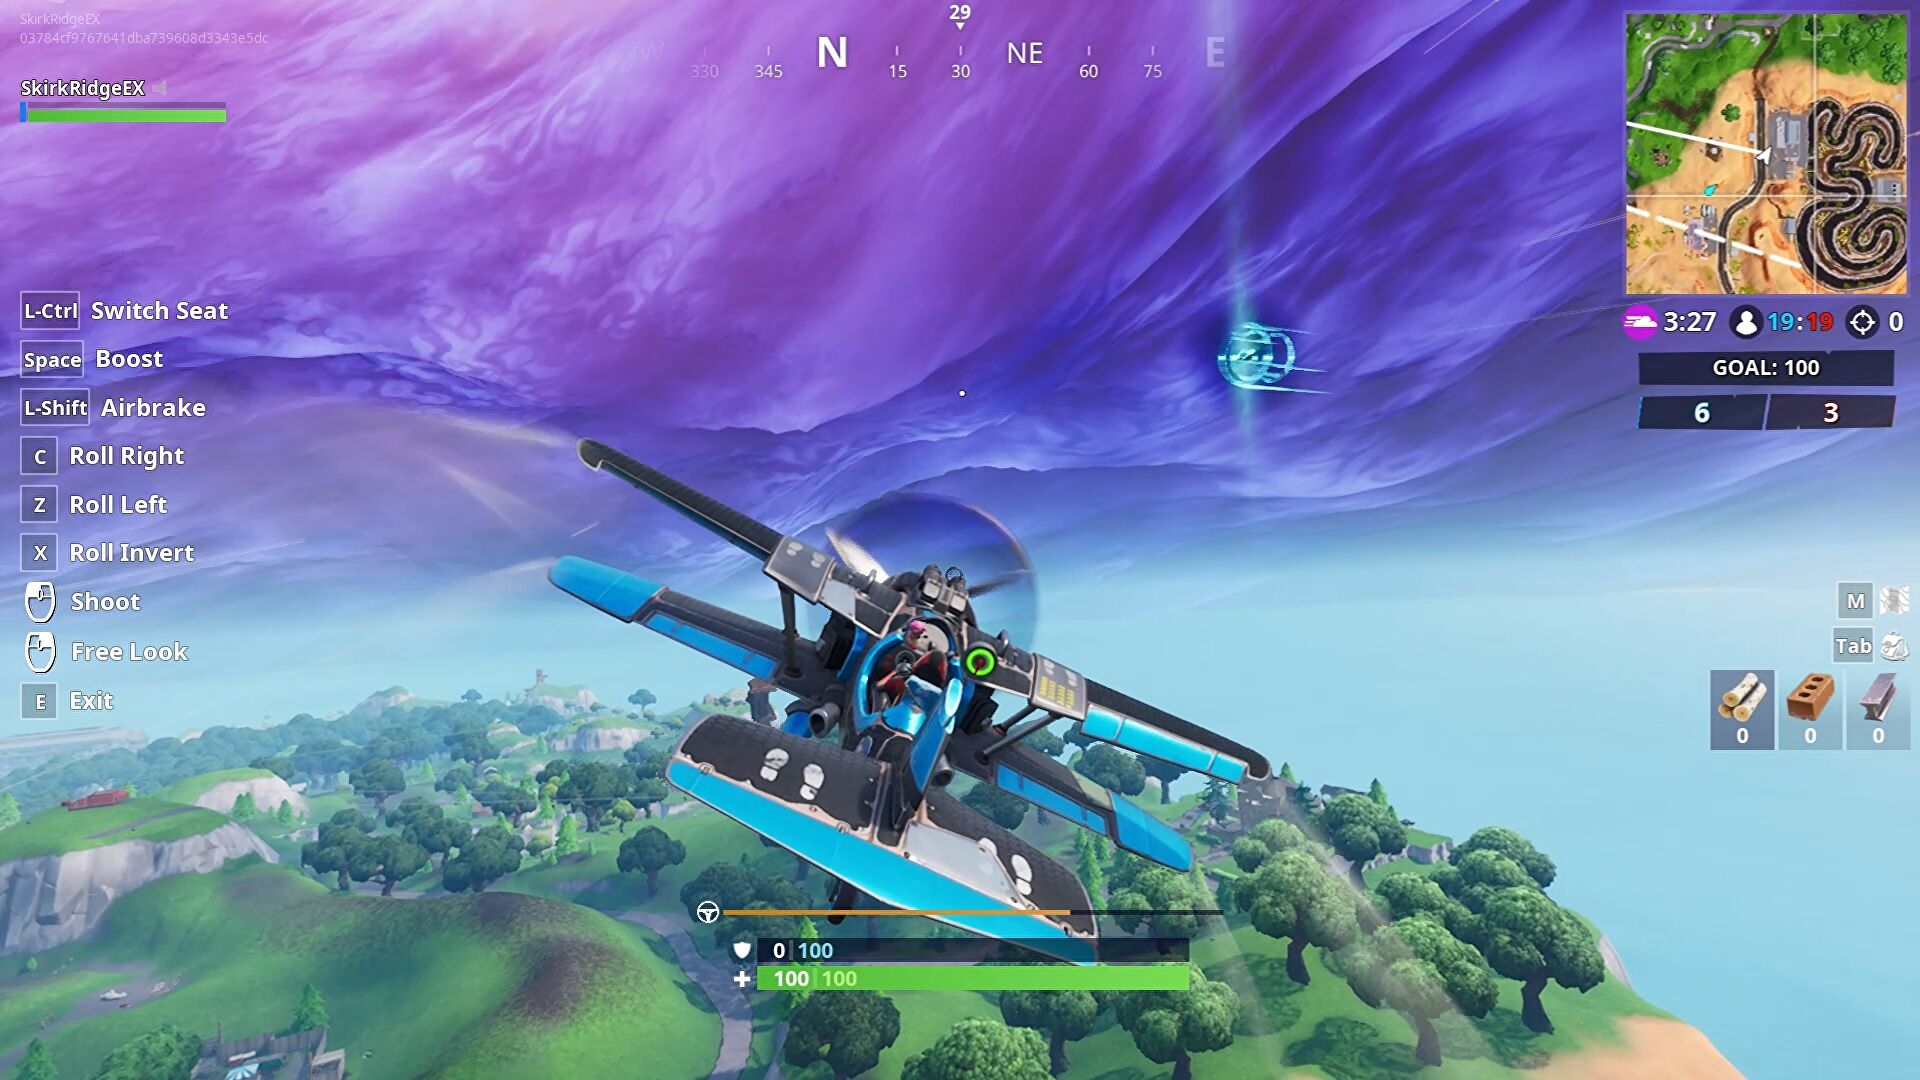 Fortnite Plane Parts Fortnite Plane Time Trial The Easiest Two Time Trial Courses Rock Paper Shotgun